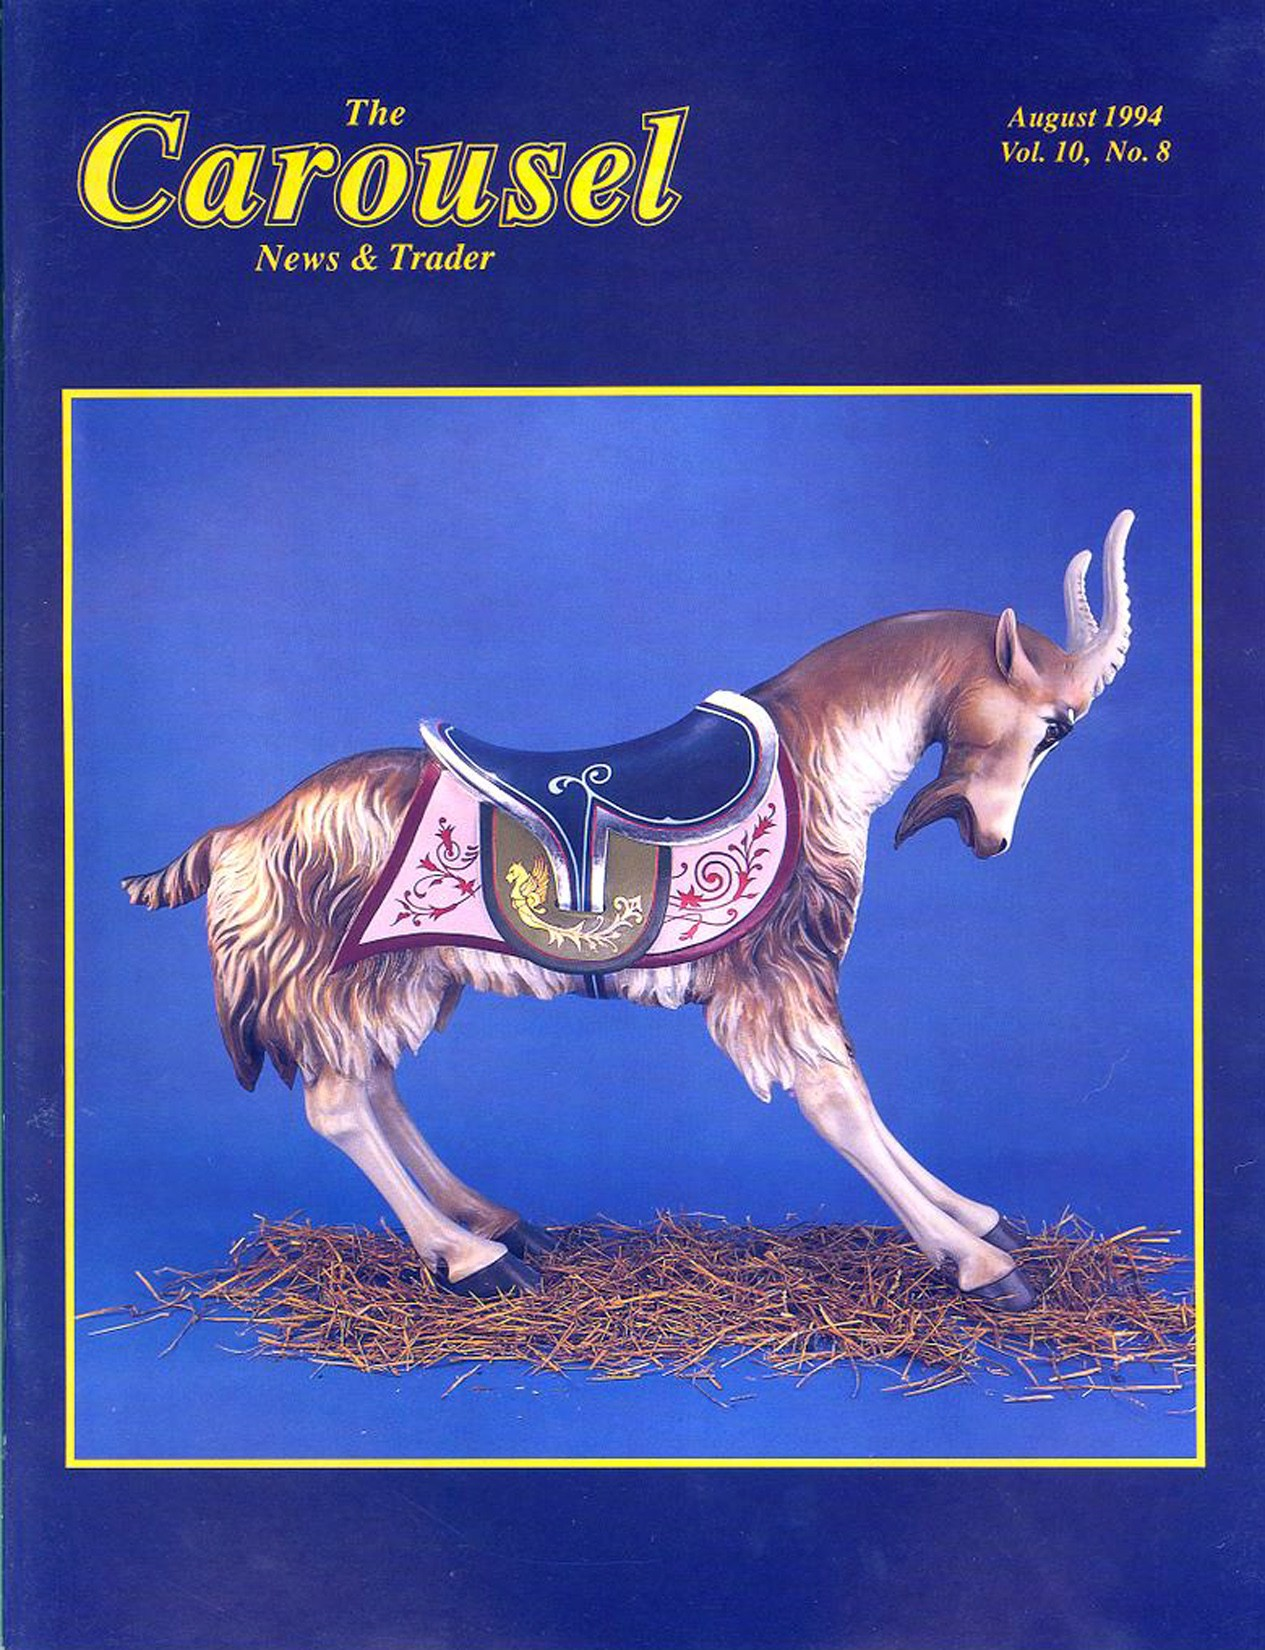 cnt_08_1994-Carousel-goat-by-Henry-Paul-Tony-Orlando-paint